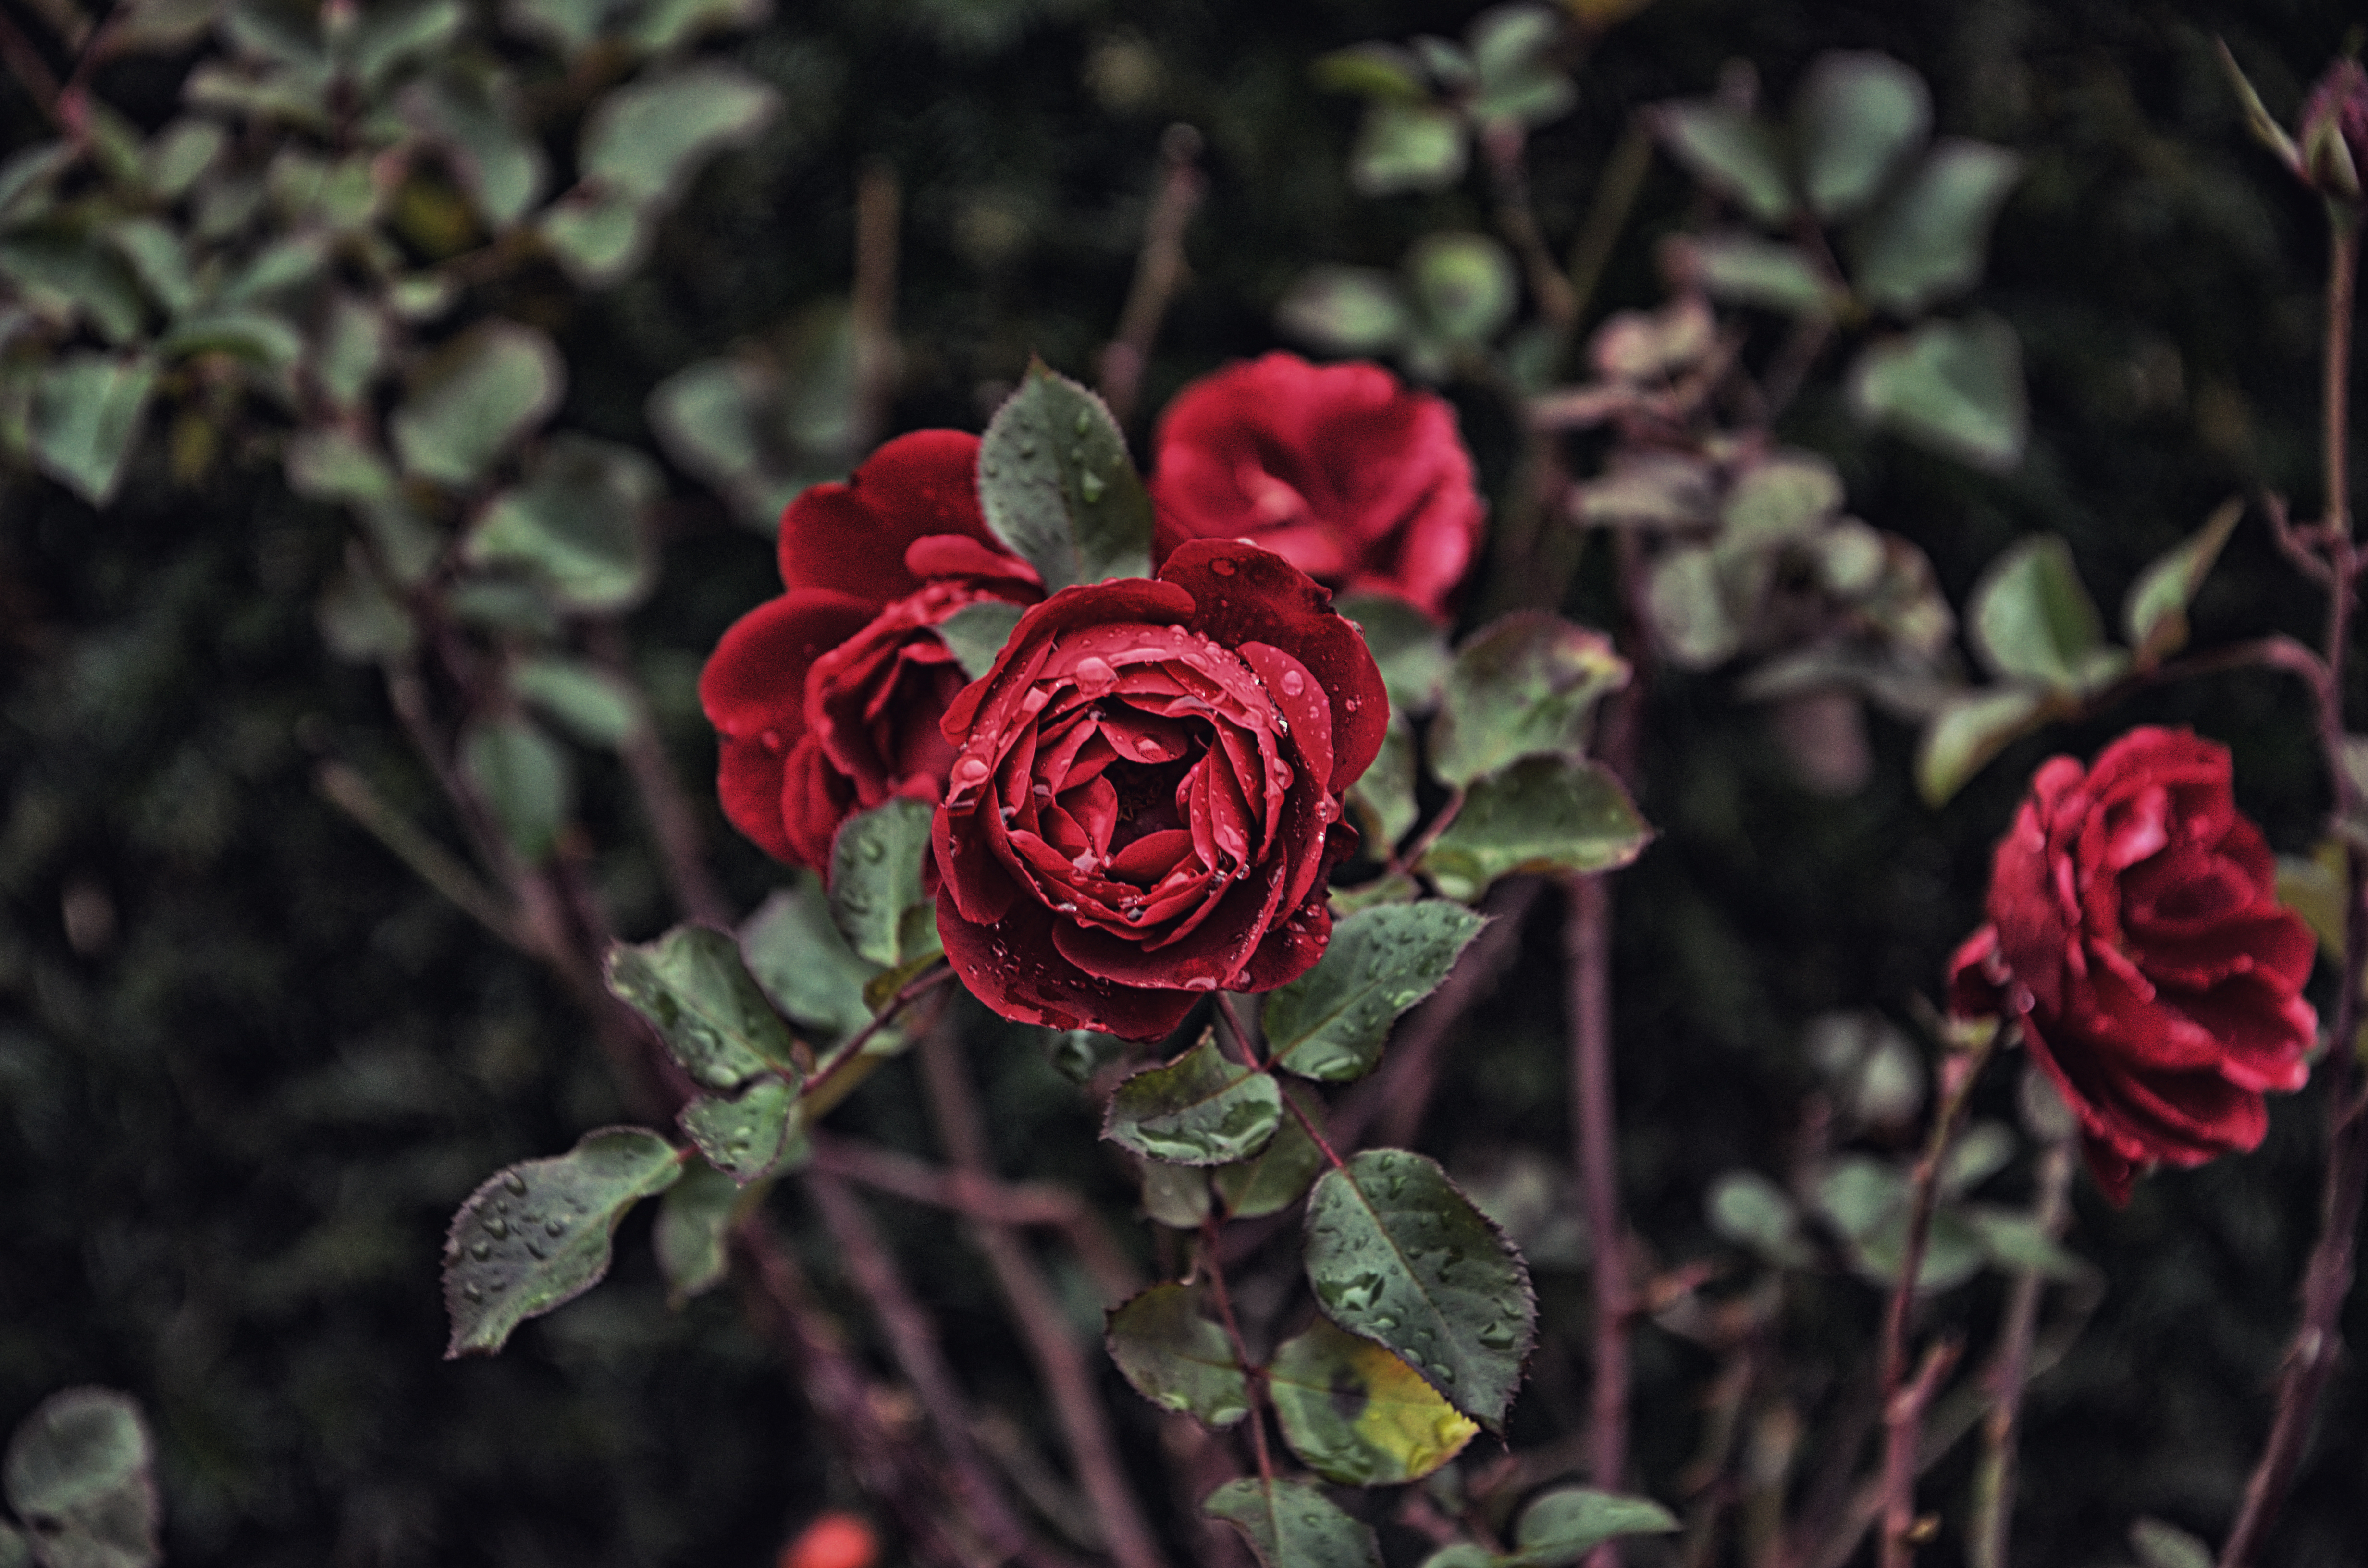 roses_branch_flowers_115099_4928x3264